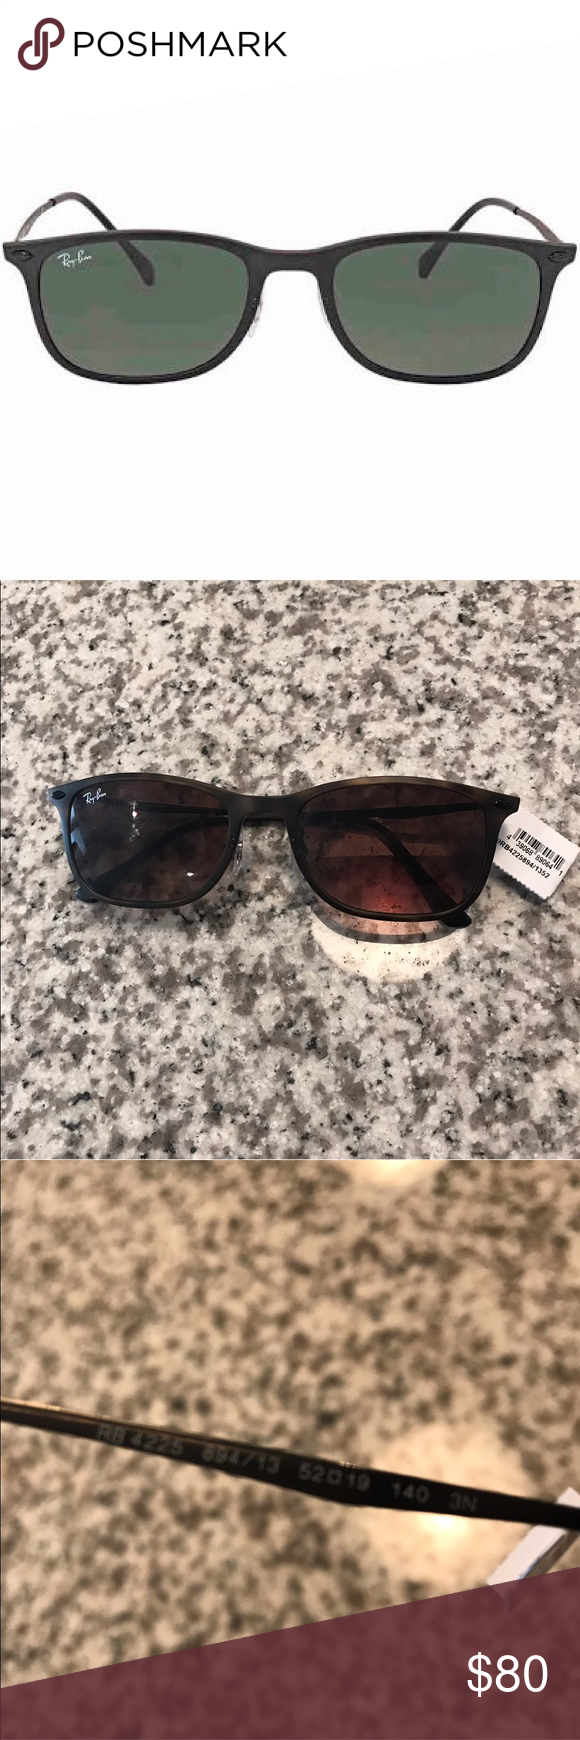 67f715bb131 Ray-Ban RB4225 Sunglasses Ray Ban Sunglasses. Series number  RB4225. Color  code